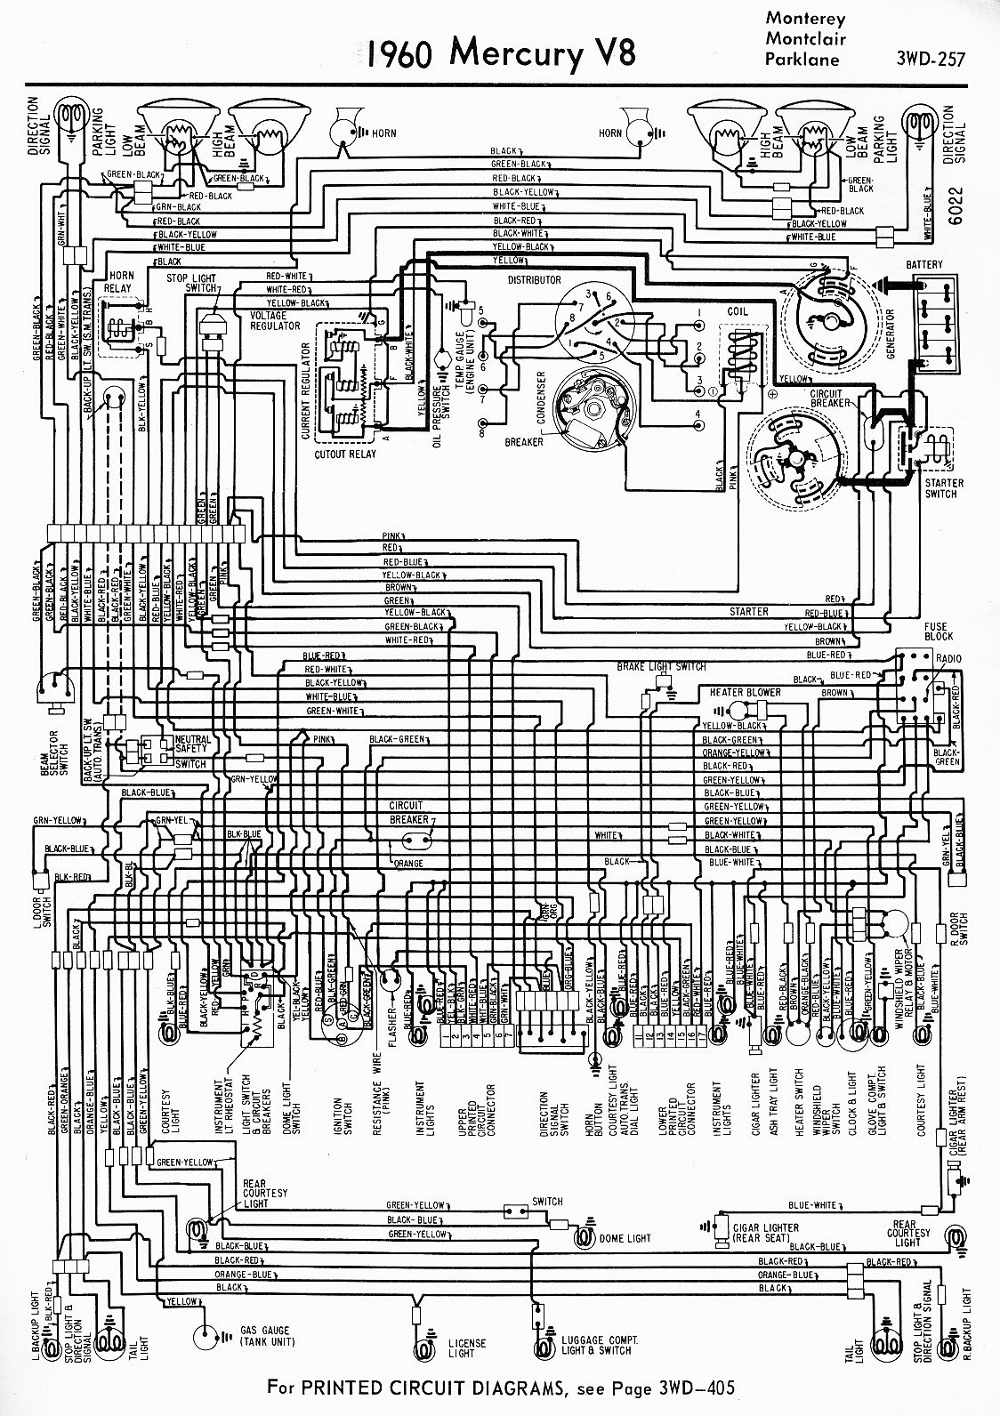 2005 Mercury Monterey Wiring Diagram Trusted Wiring Diagram \u2022 Right  Jackshaft 2005 Mercury Mariner Premier Electrical Diagram 2005 Mercury  Mariner